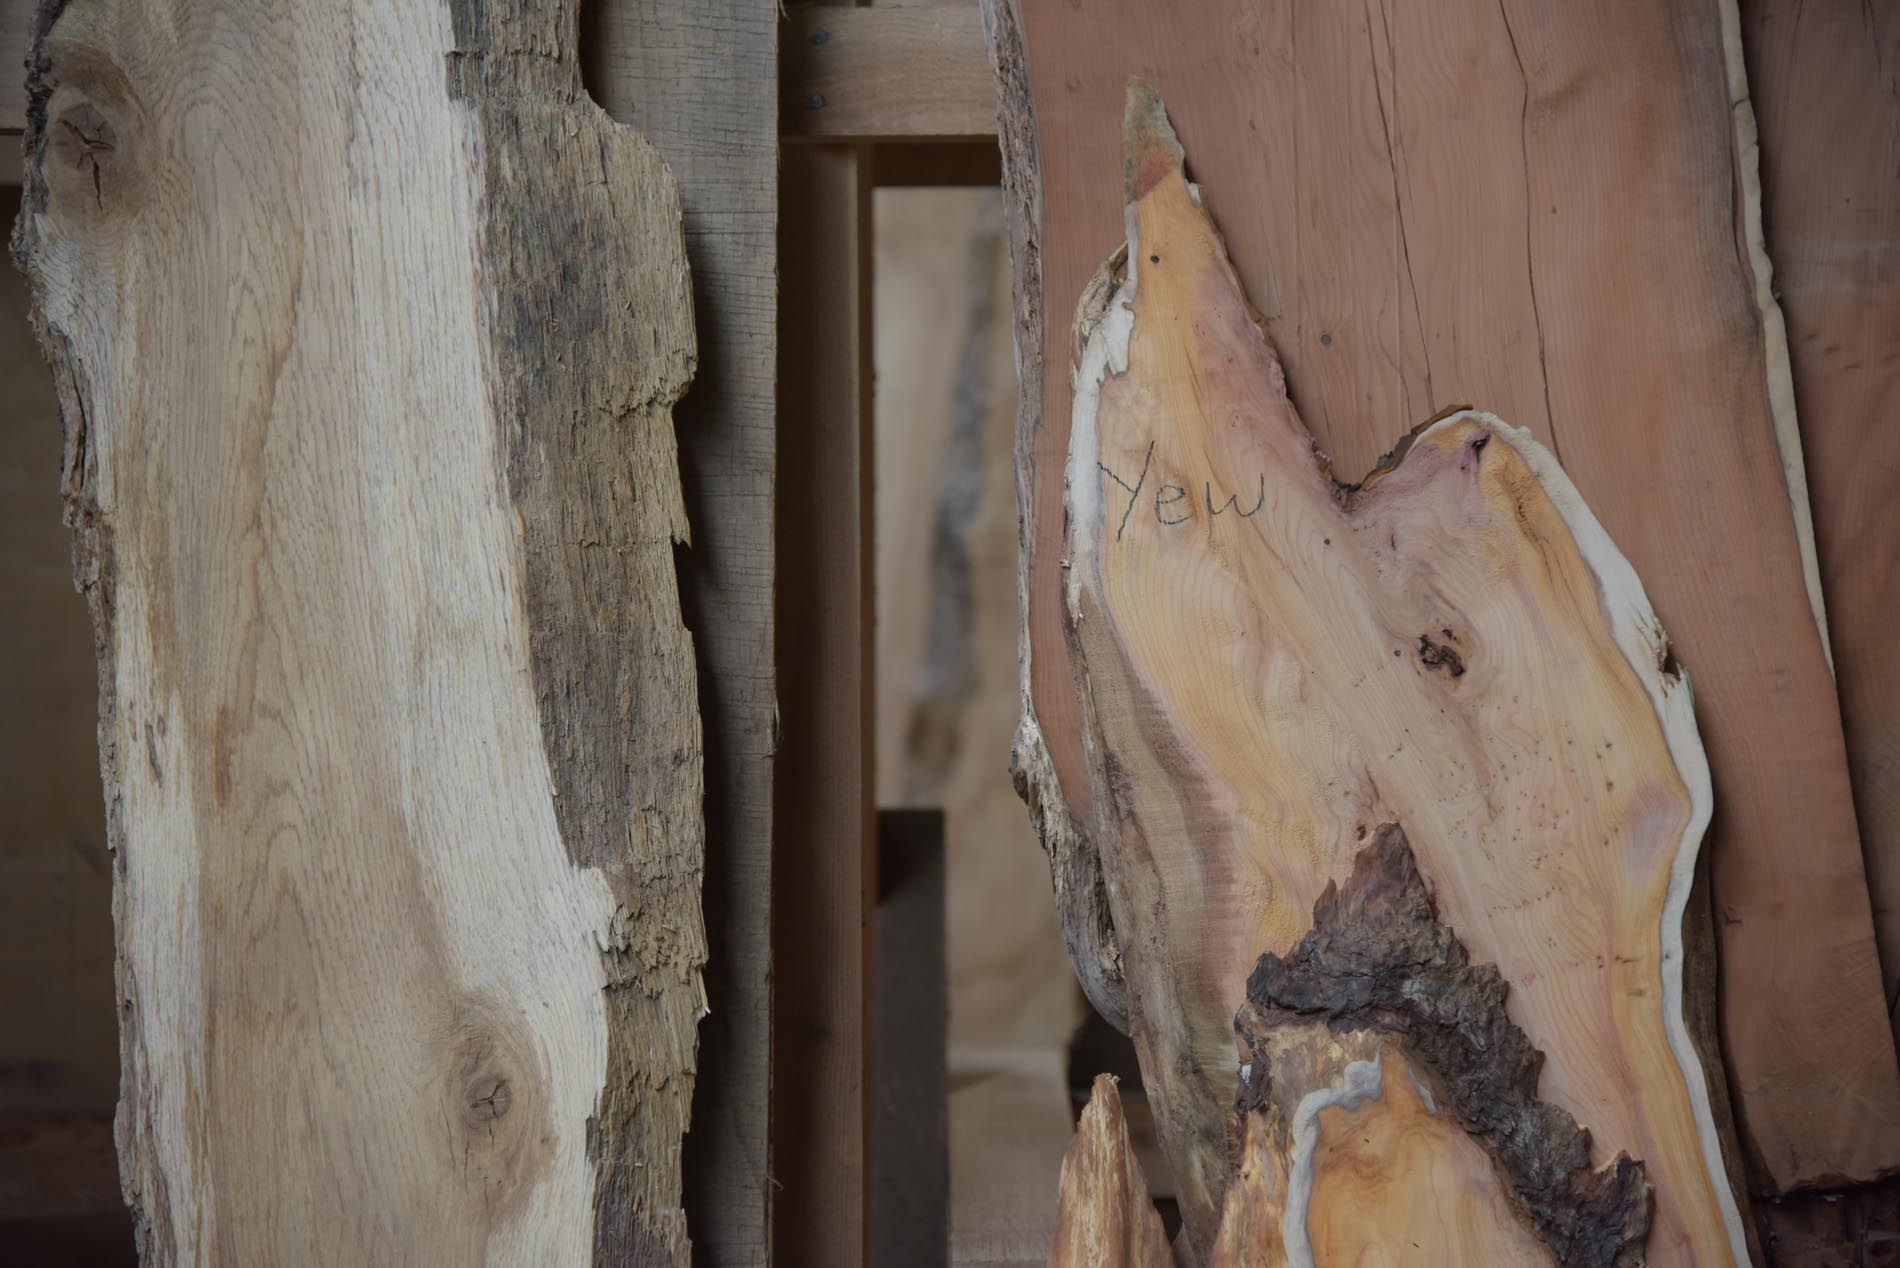 yew and oak waney edge boards sit next to each other in the woodyard timber rack